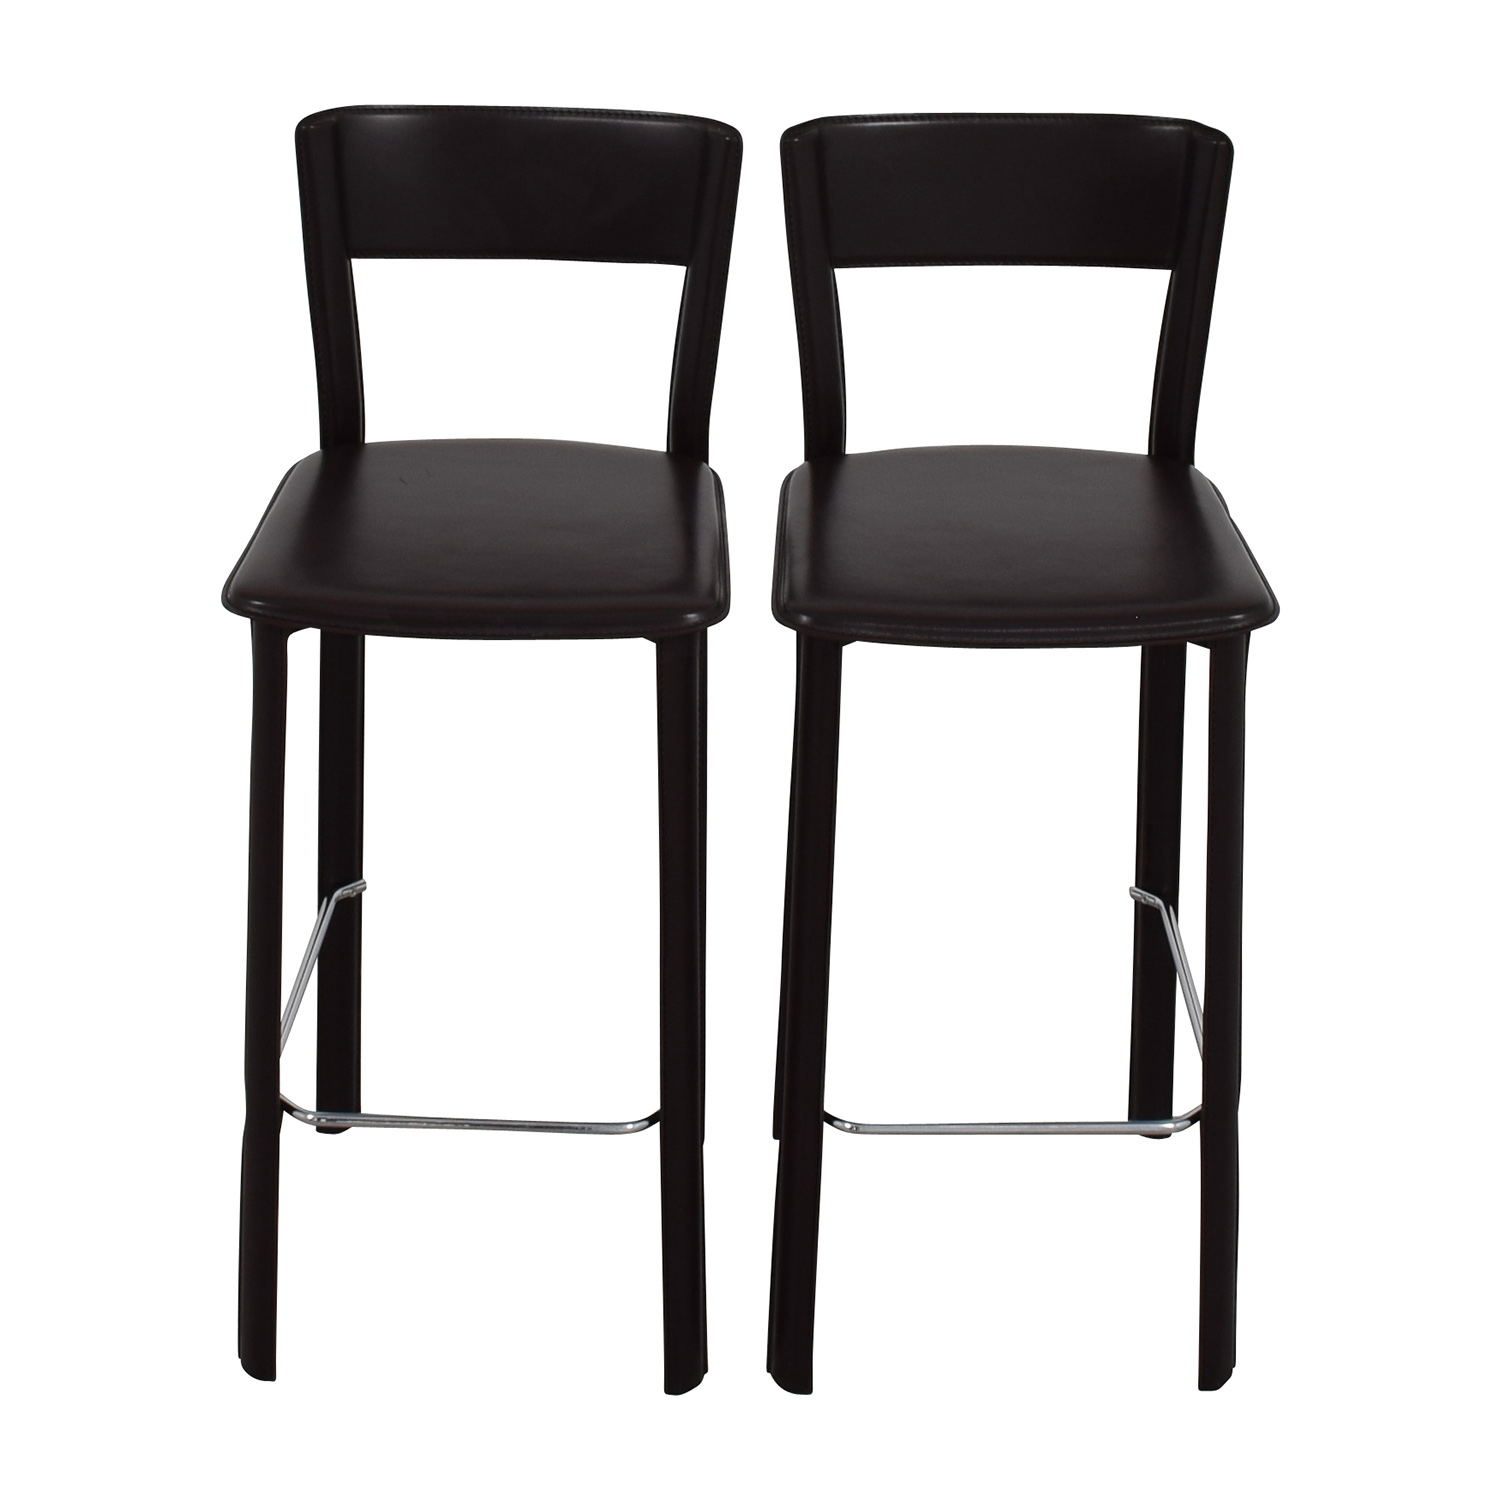 chair design within reach stacking chairs 70 off allegro counter buy stools online